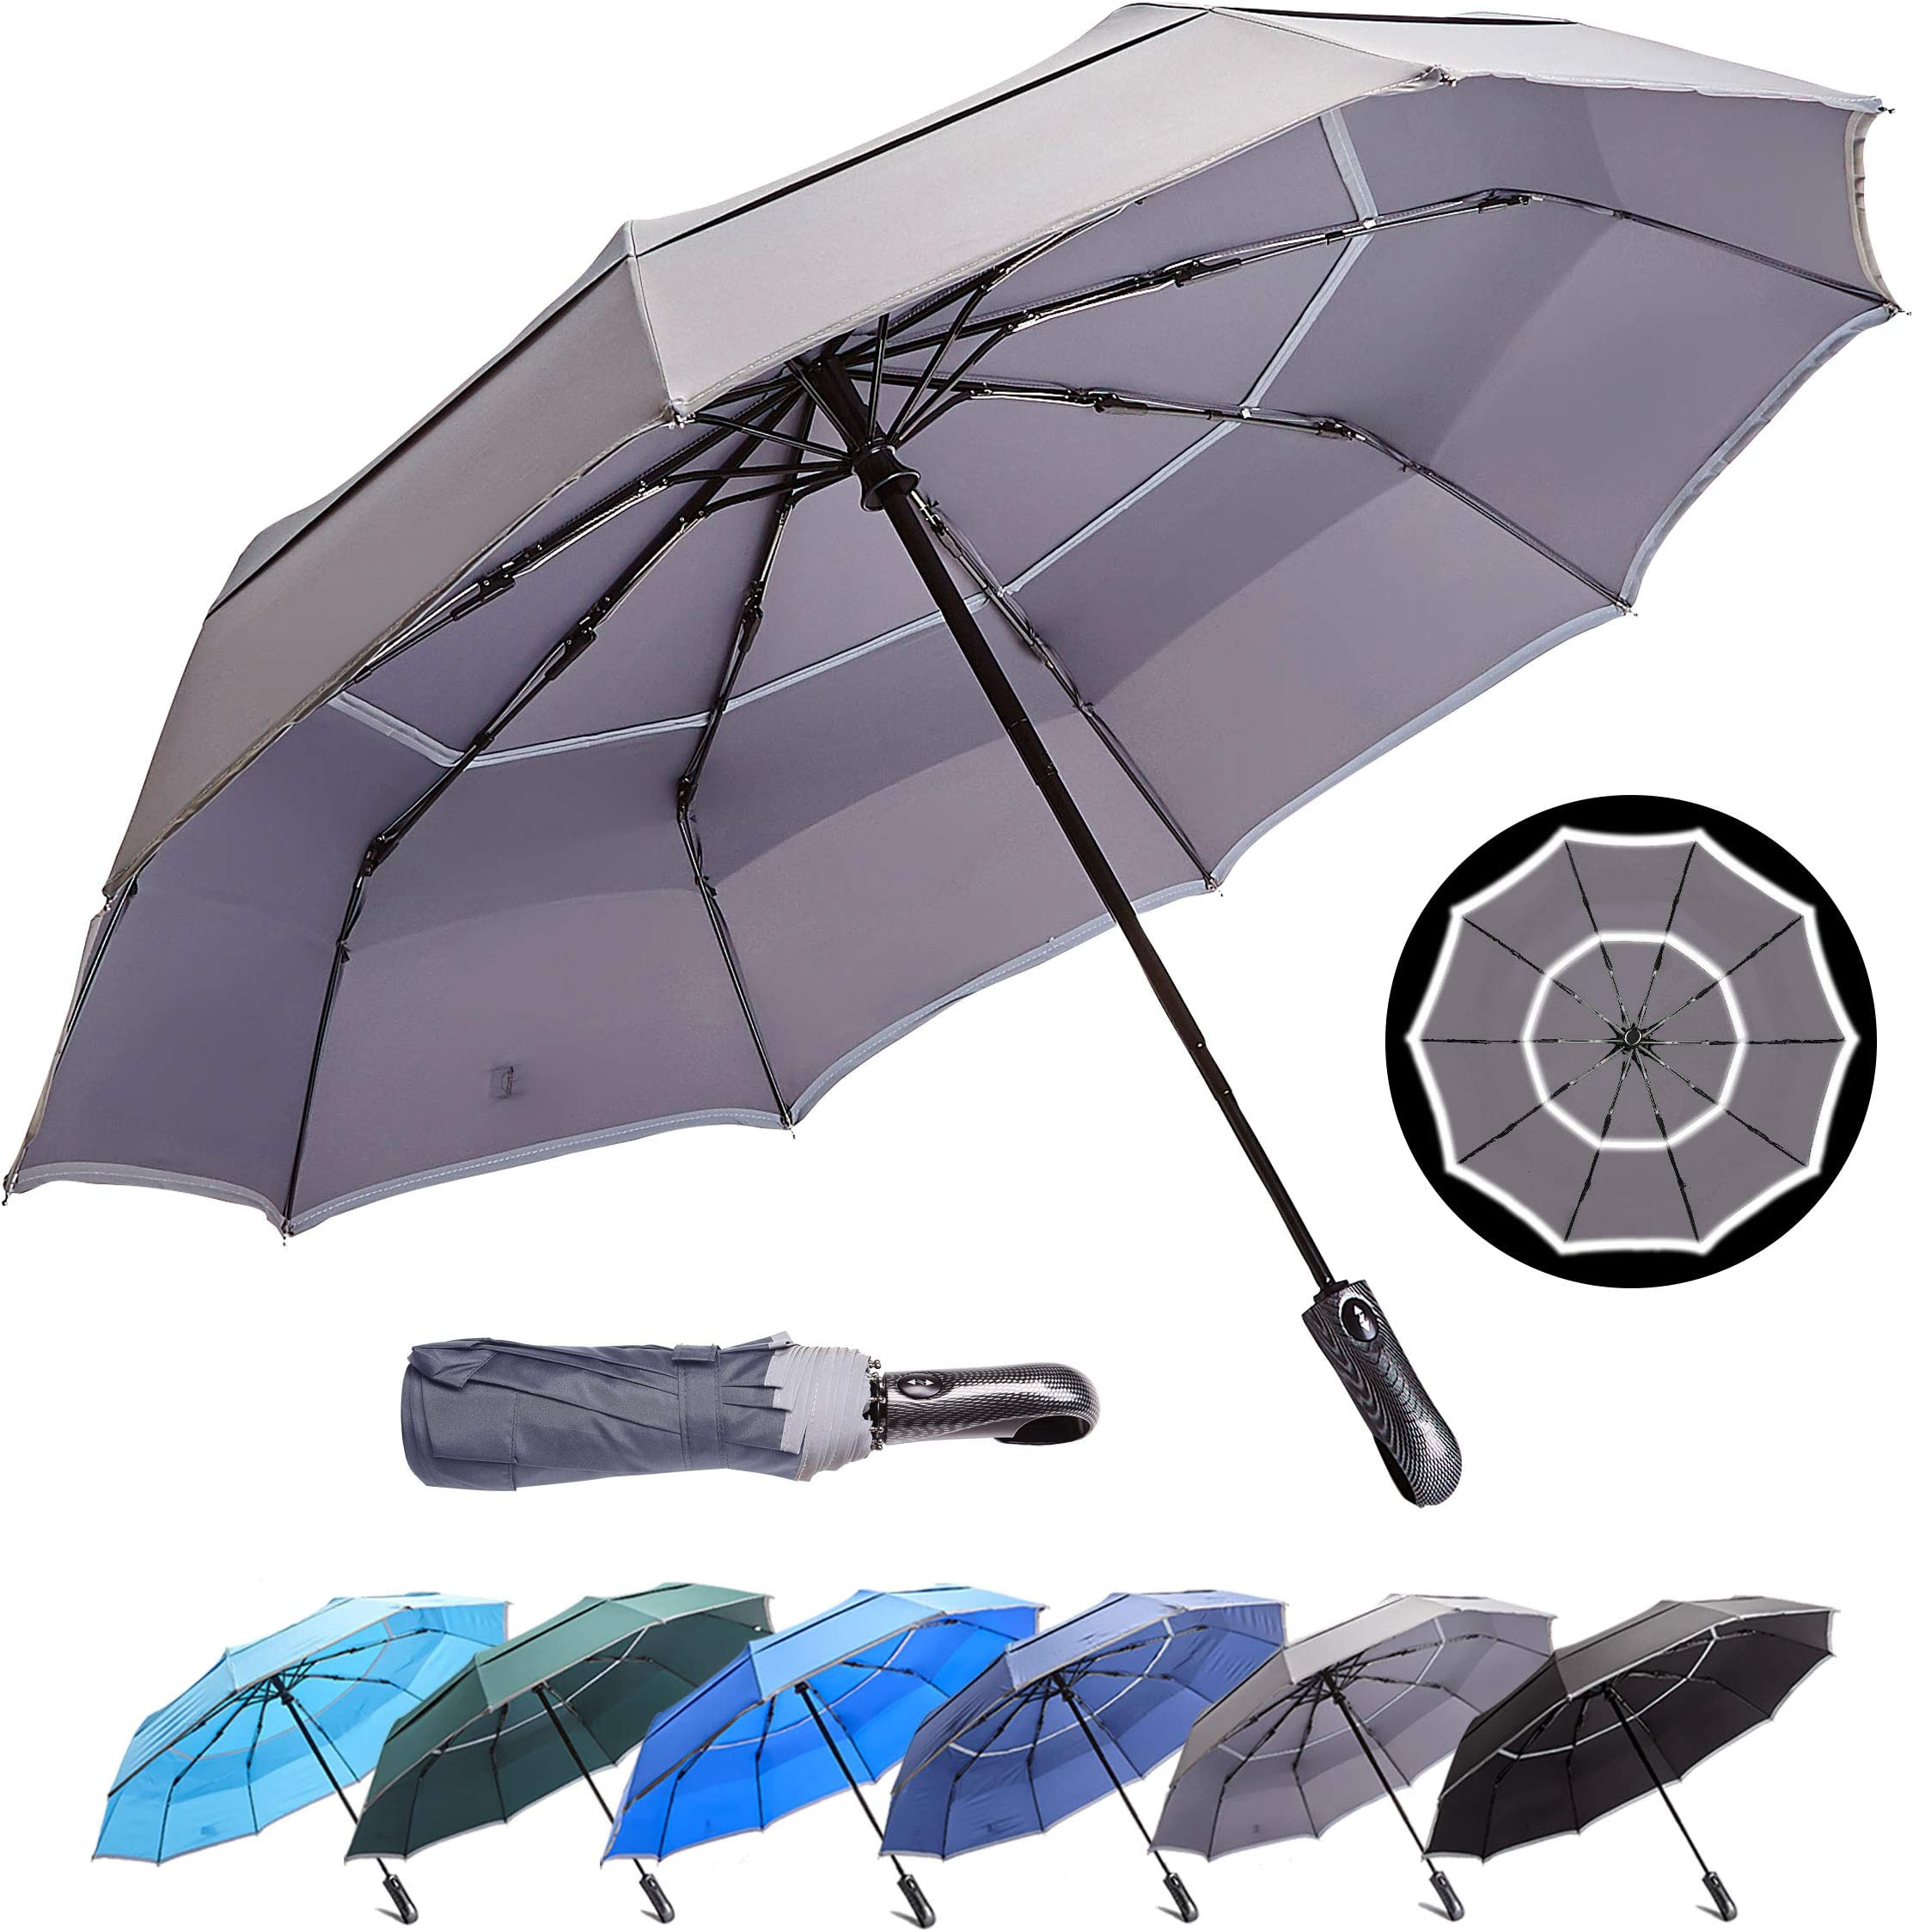 HOSA Auto Open Close Compact Portable Lightweight Automatic Repel Folding Travel Umbrella Ergonomic Handle Double Vented Windproof UV Protection, For Raining Sunny Days Night Time Use, Multiple Colors